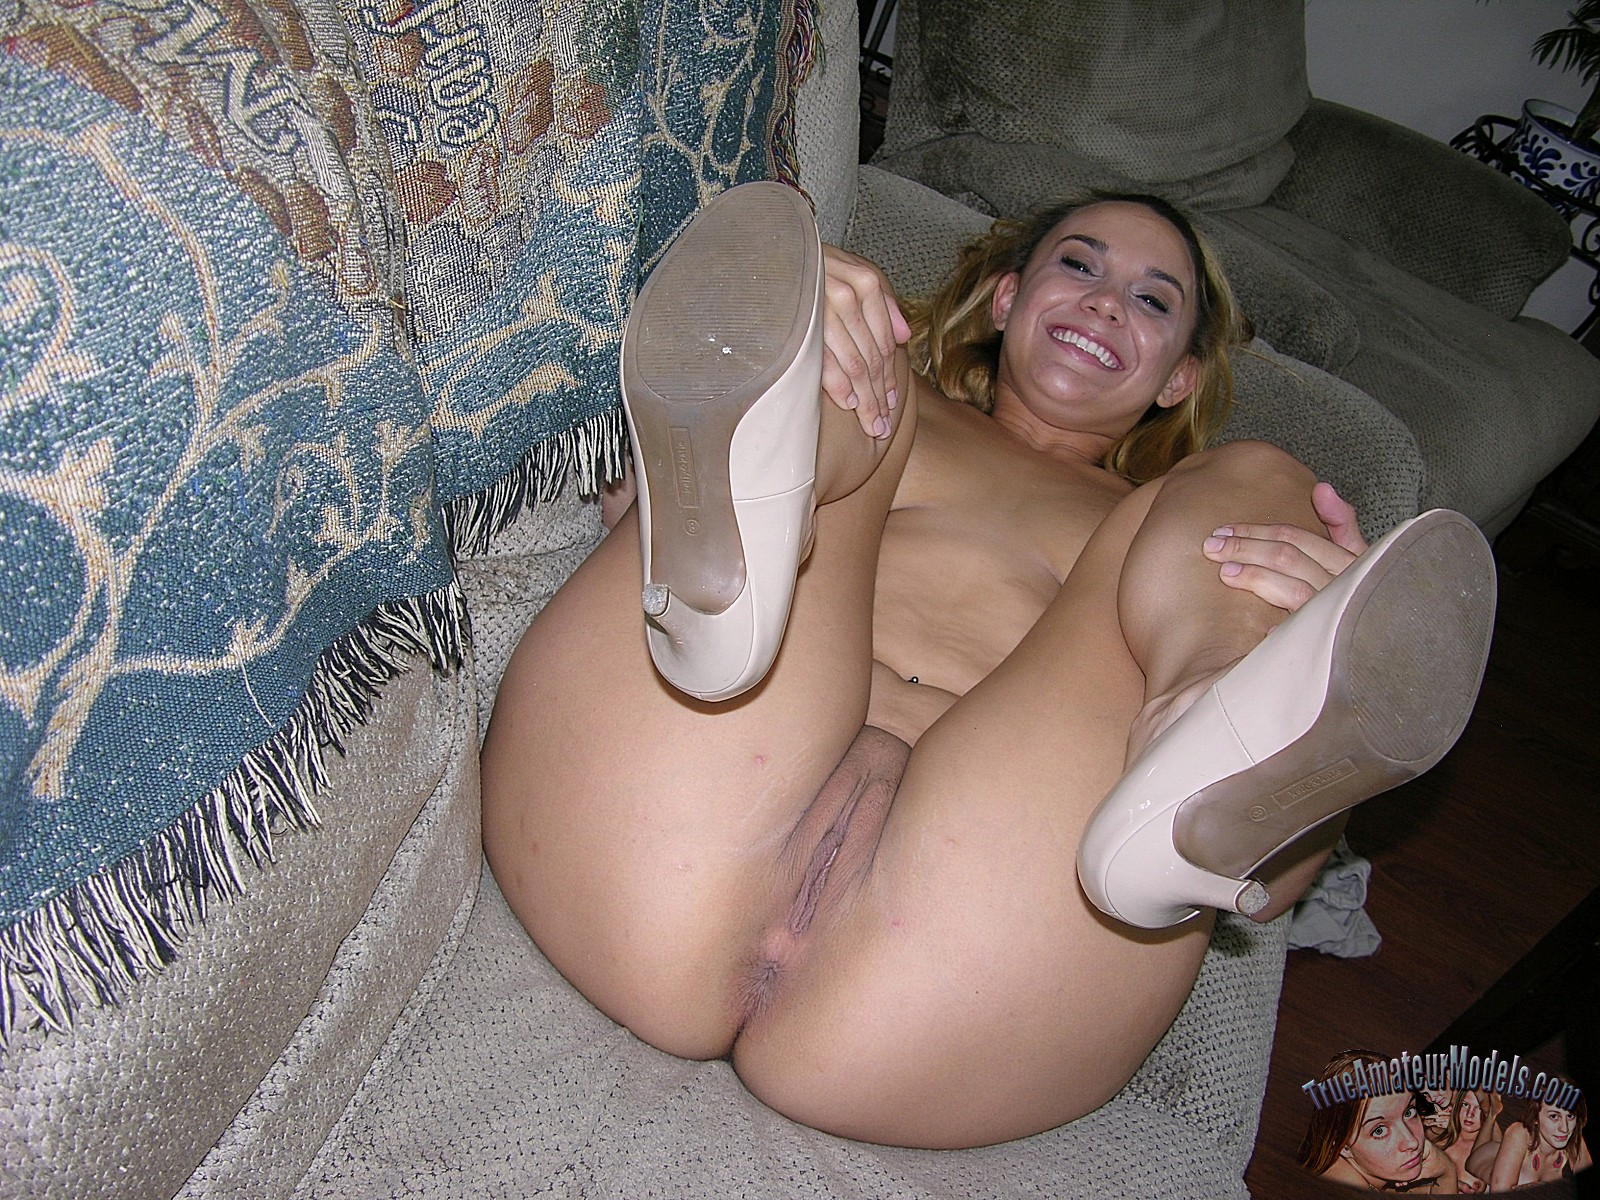 latina models True amateur